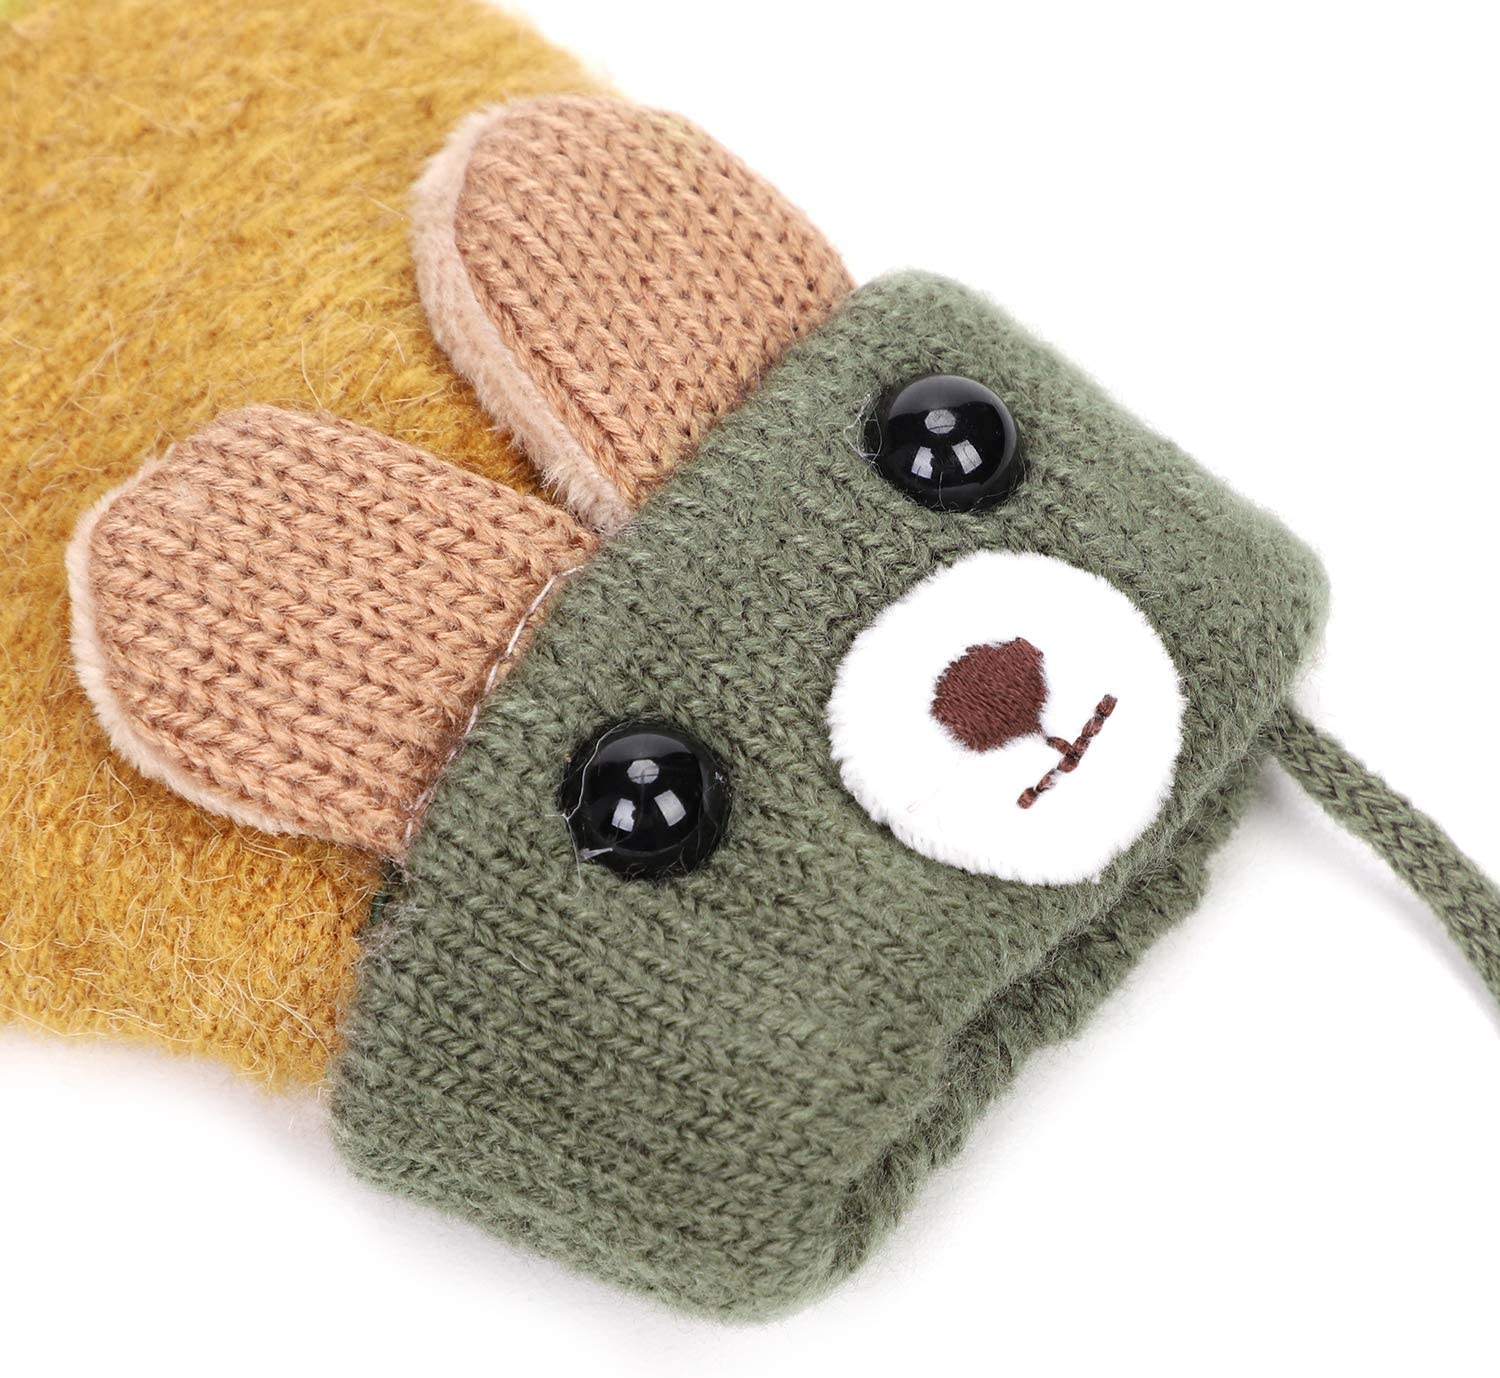 Kids Knitted Mittens Stretchy Soft Full Finger Mittens Adjustable Hanging String Winter Warm Gloves Thick Velvet Lining Cute Cartoon Bear Infant Winter Keep Warm Home Outdoor Costume Accessories